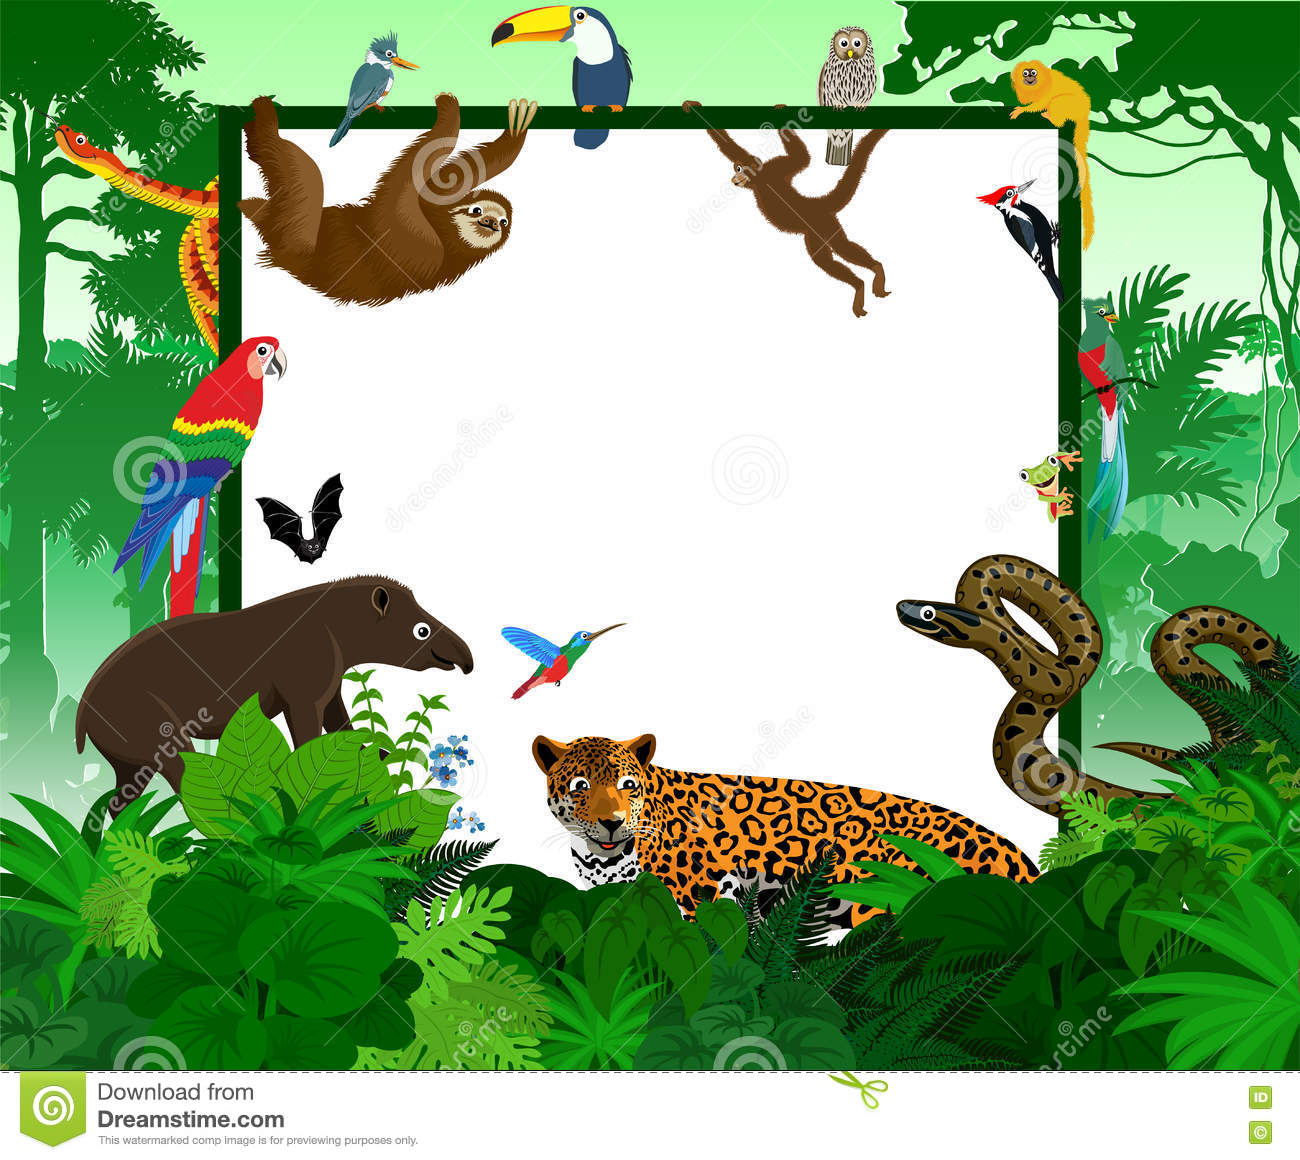 Carte tropicale de vecteur avec des animaux de jungle Illustration de forêt tropicale de style de jungle